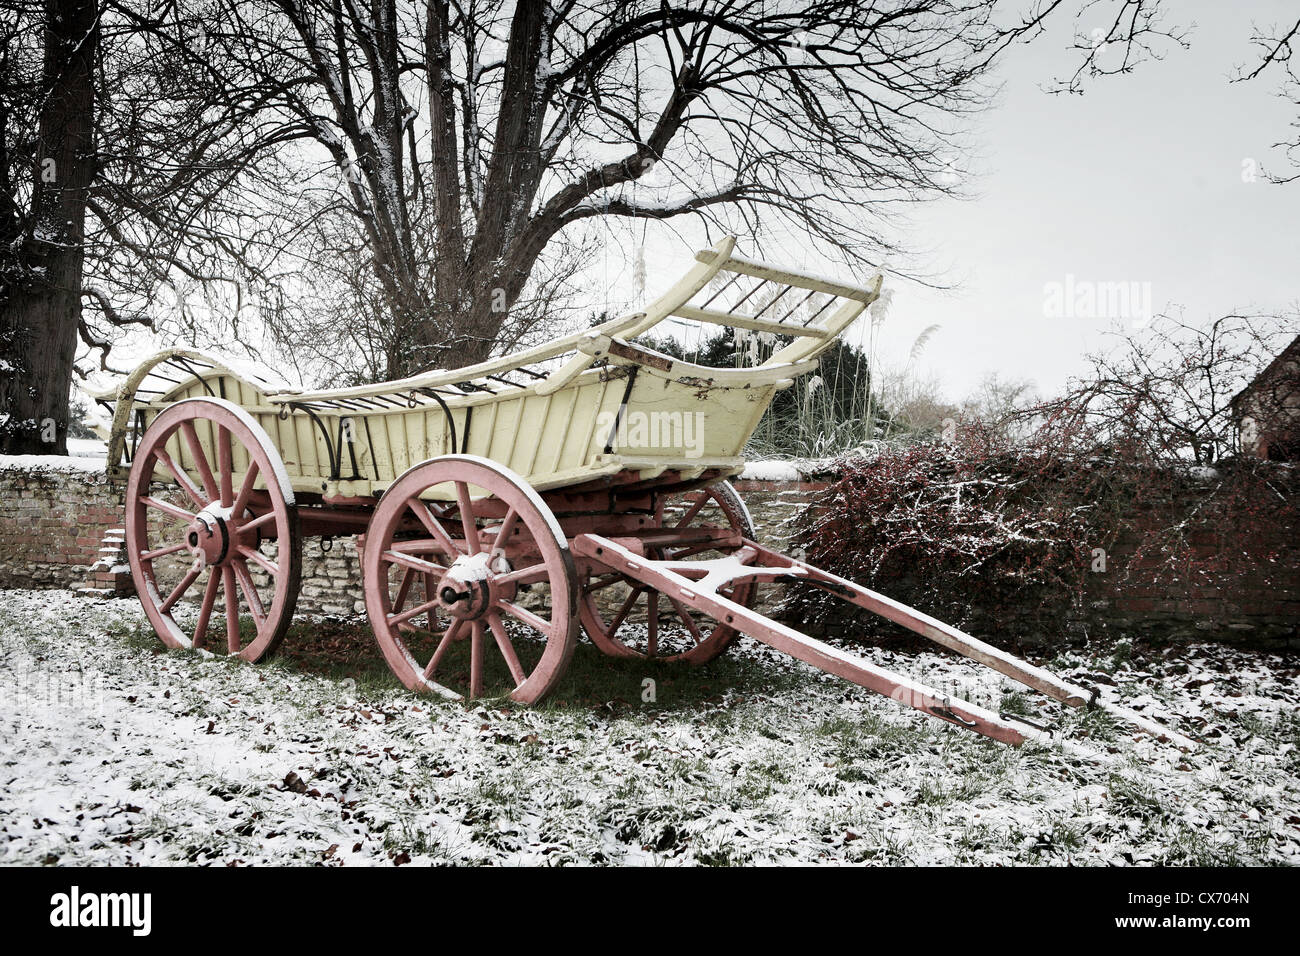 English Farm Cart, horse drawn waggon in the snow in Oxfordshire, England. The grass and old brick wall is frosty - Stock Image